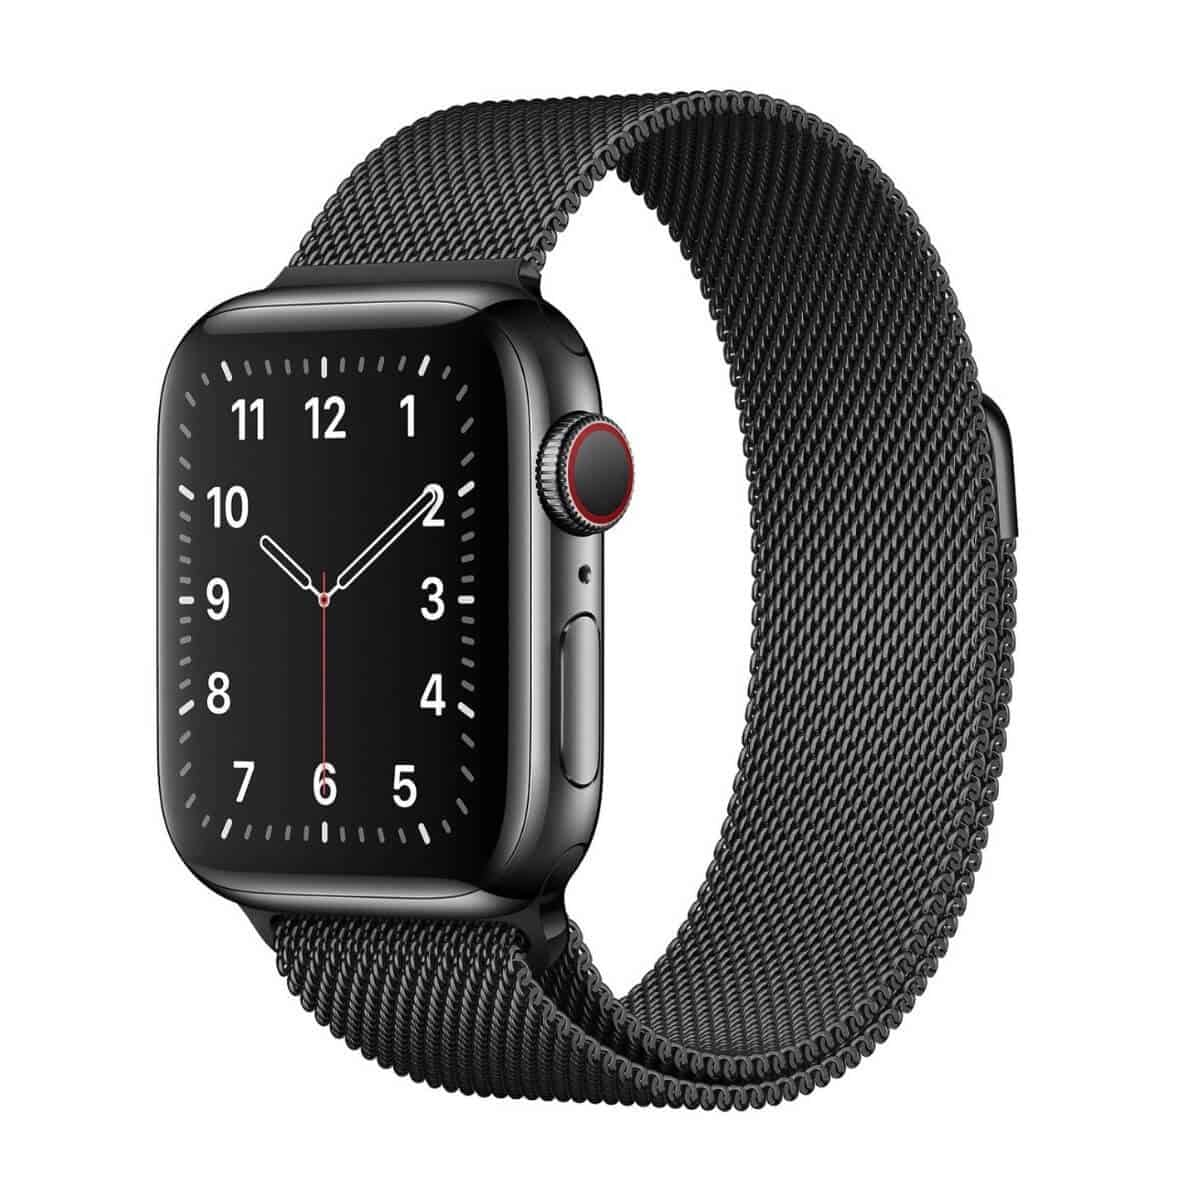 Apple Watch with a black Milanese Loop band.